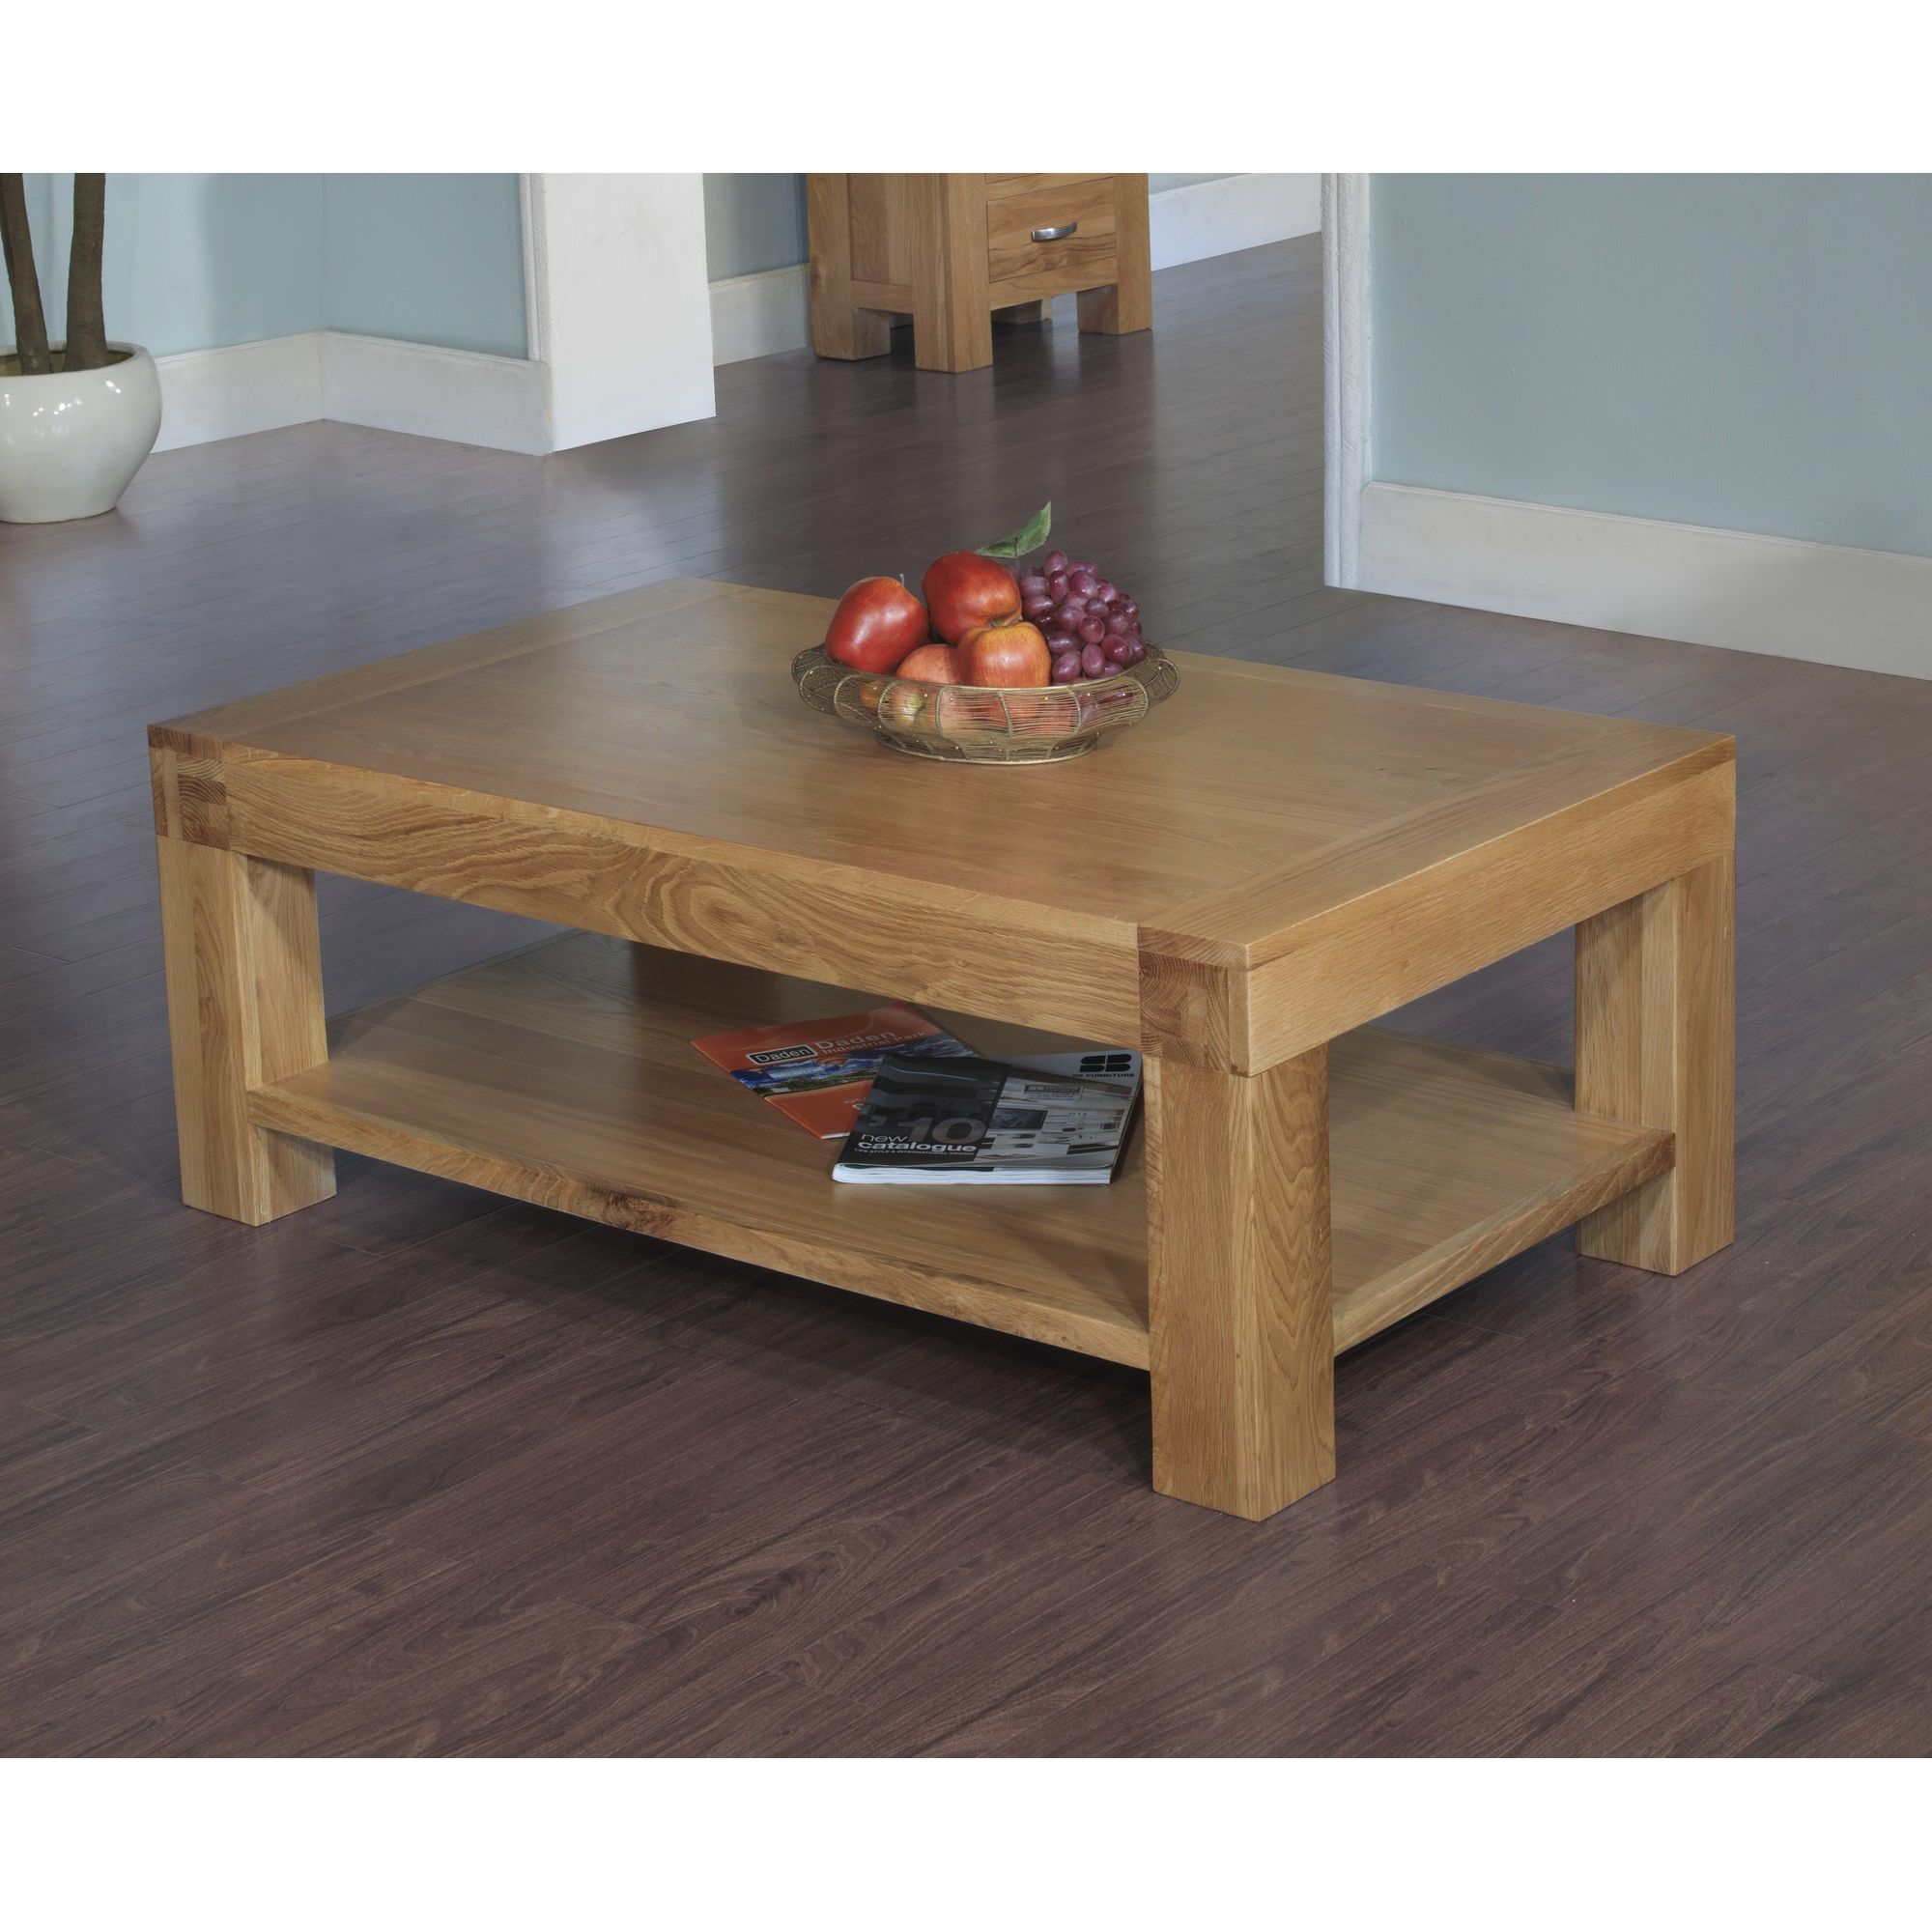 Hawkshead Rustic Oak Blonde Coffee Table at Tesco Direct